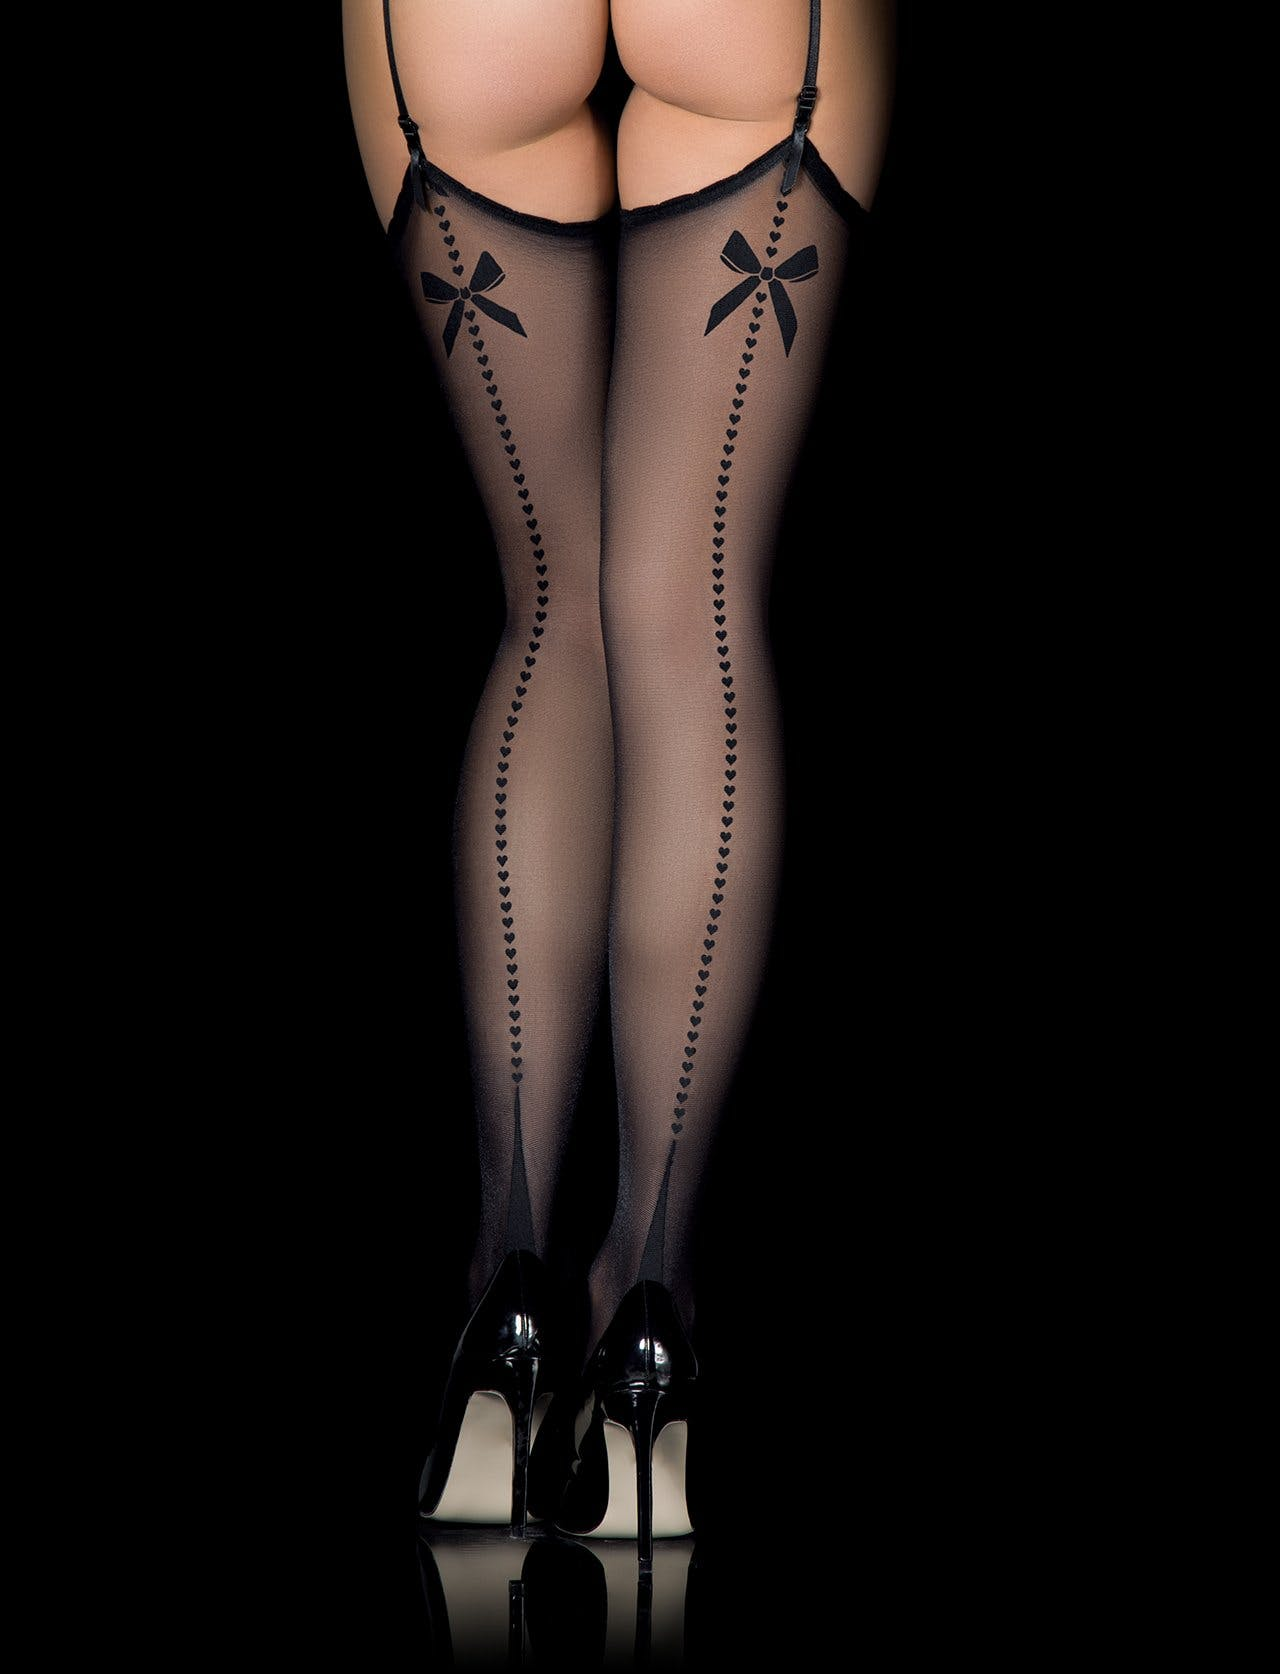 Retro Heart Stockings, $10 @honeybirdette.com